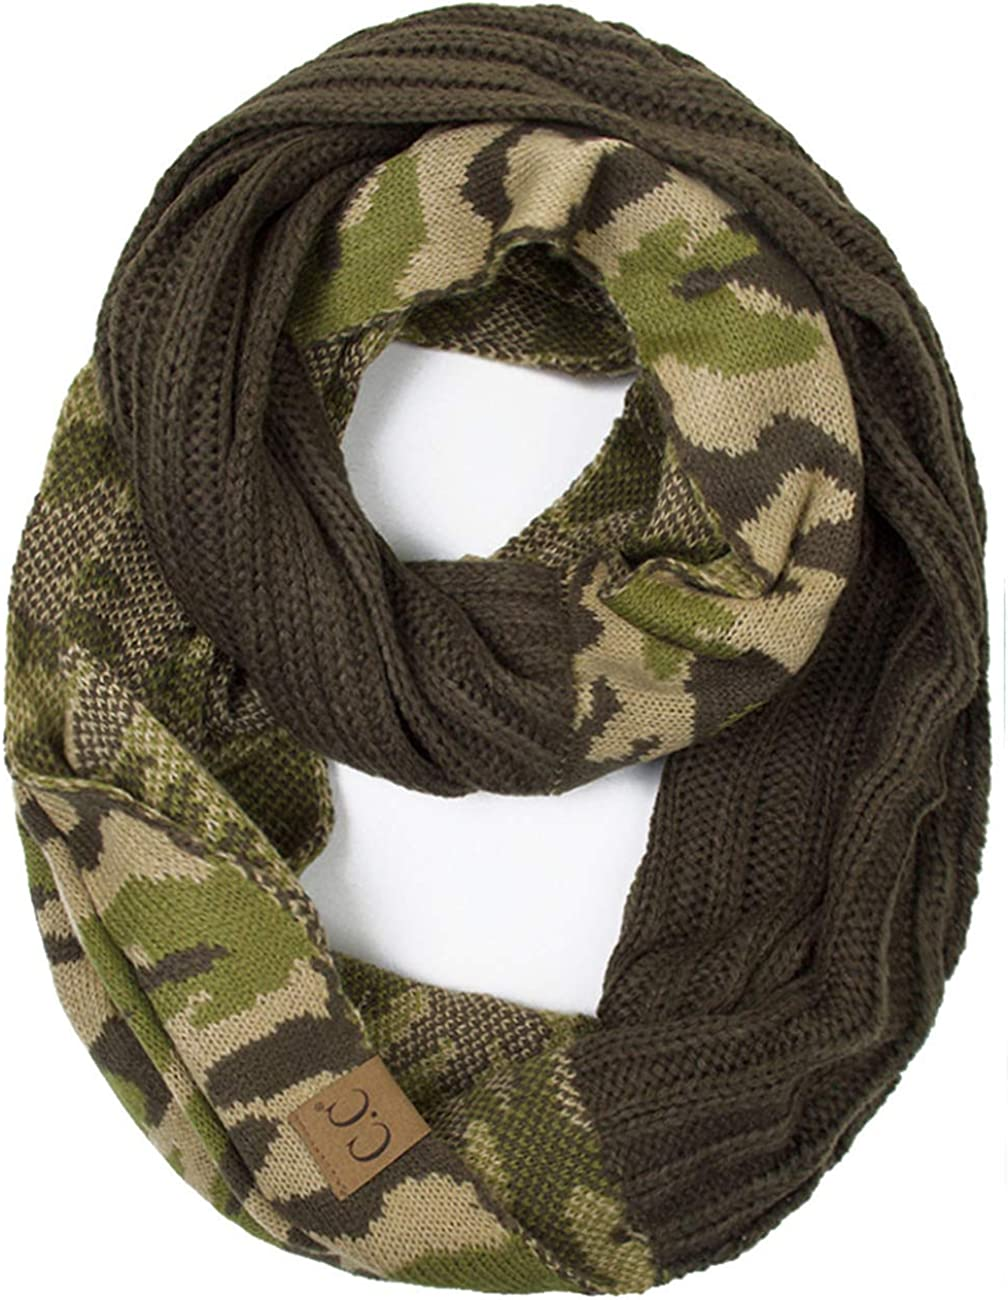 ScarvesMe CC Hot and New Cable Super special Austin Mall price Camouflage Winter Warm Camo Knit